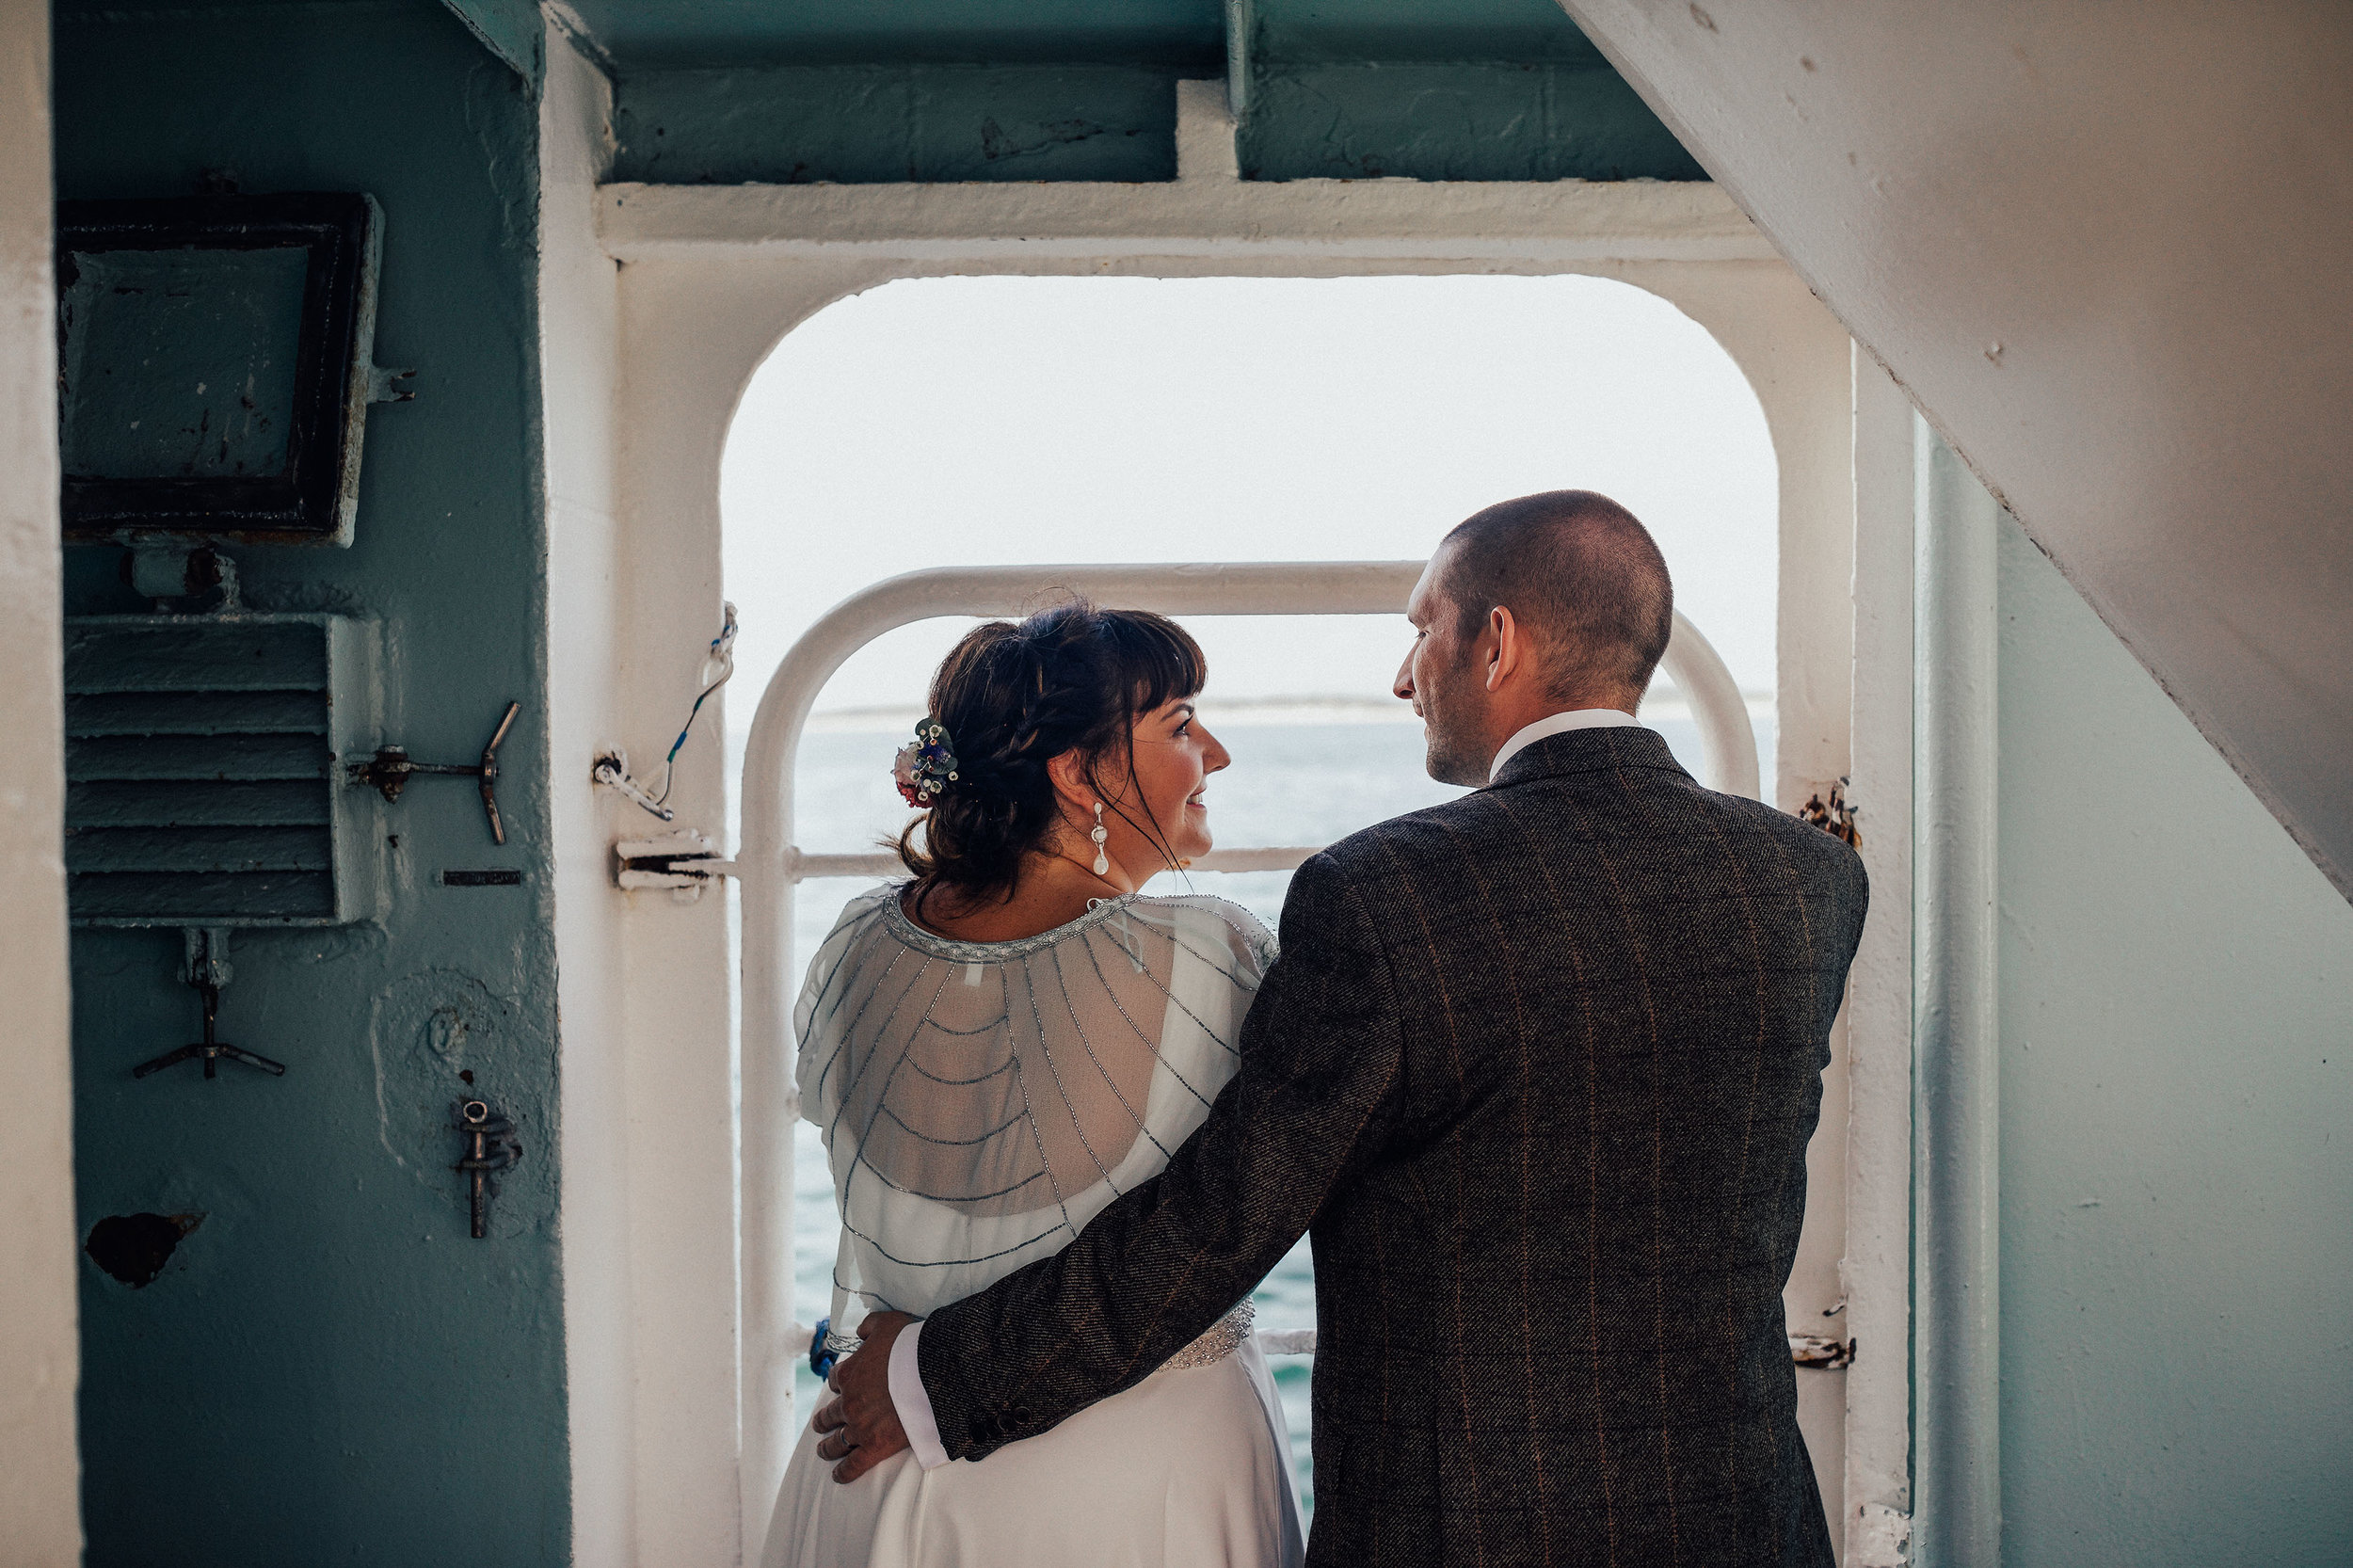 SCOTTISH_ELOPEMENT_PHOTOGRAPHER_PJ_PHILLIPS_PHOTOGRAPHY_148.jpg